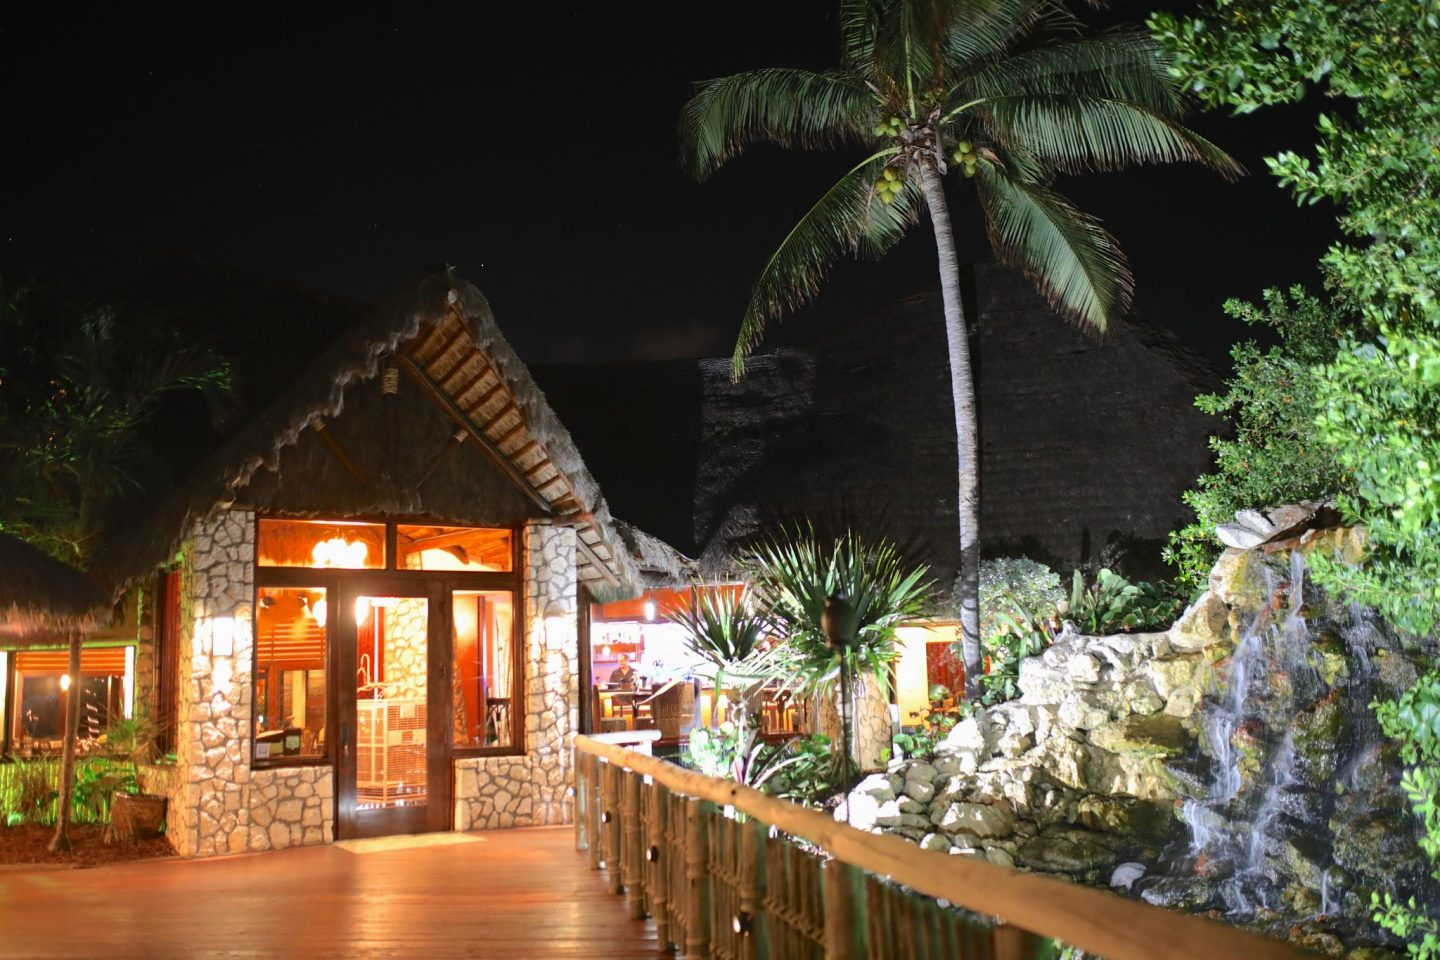 Ristorante Pappagallo, Grand Cayman, The Cayman Islands, Katie Heath, KALANCHOE